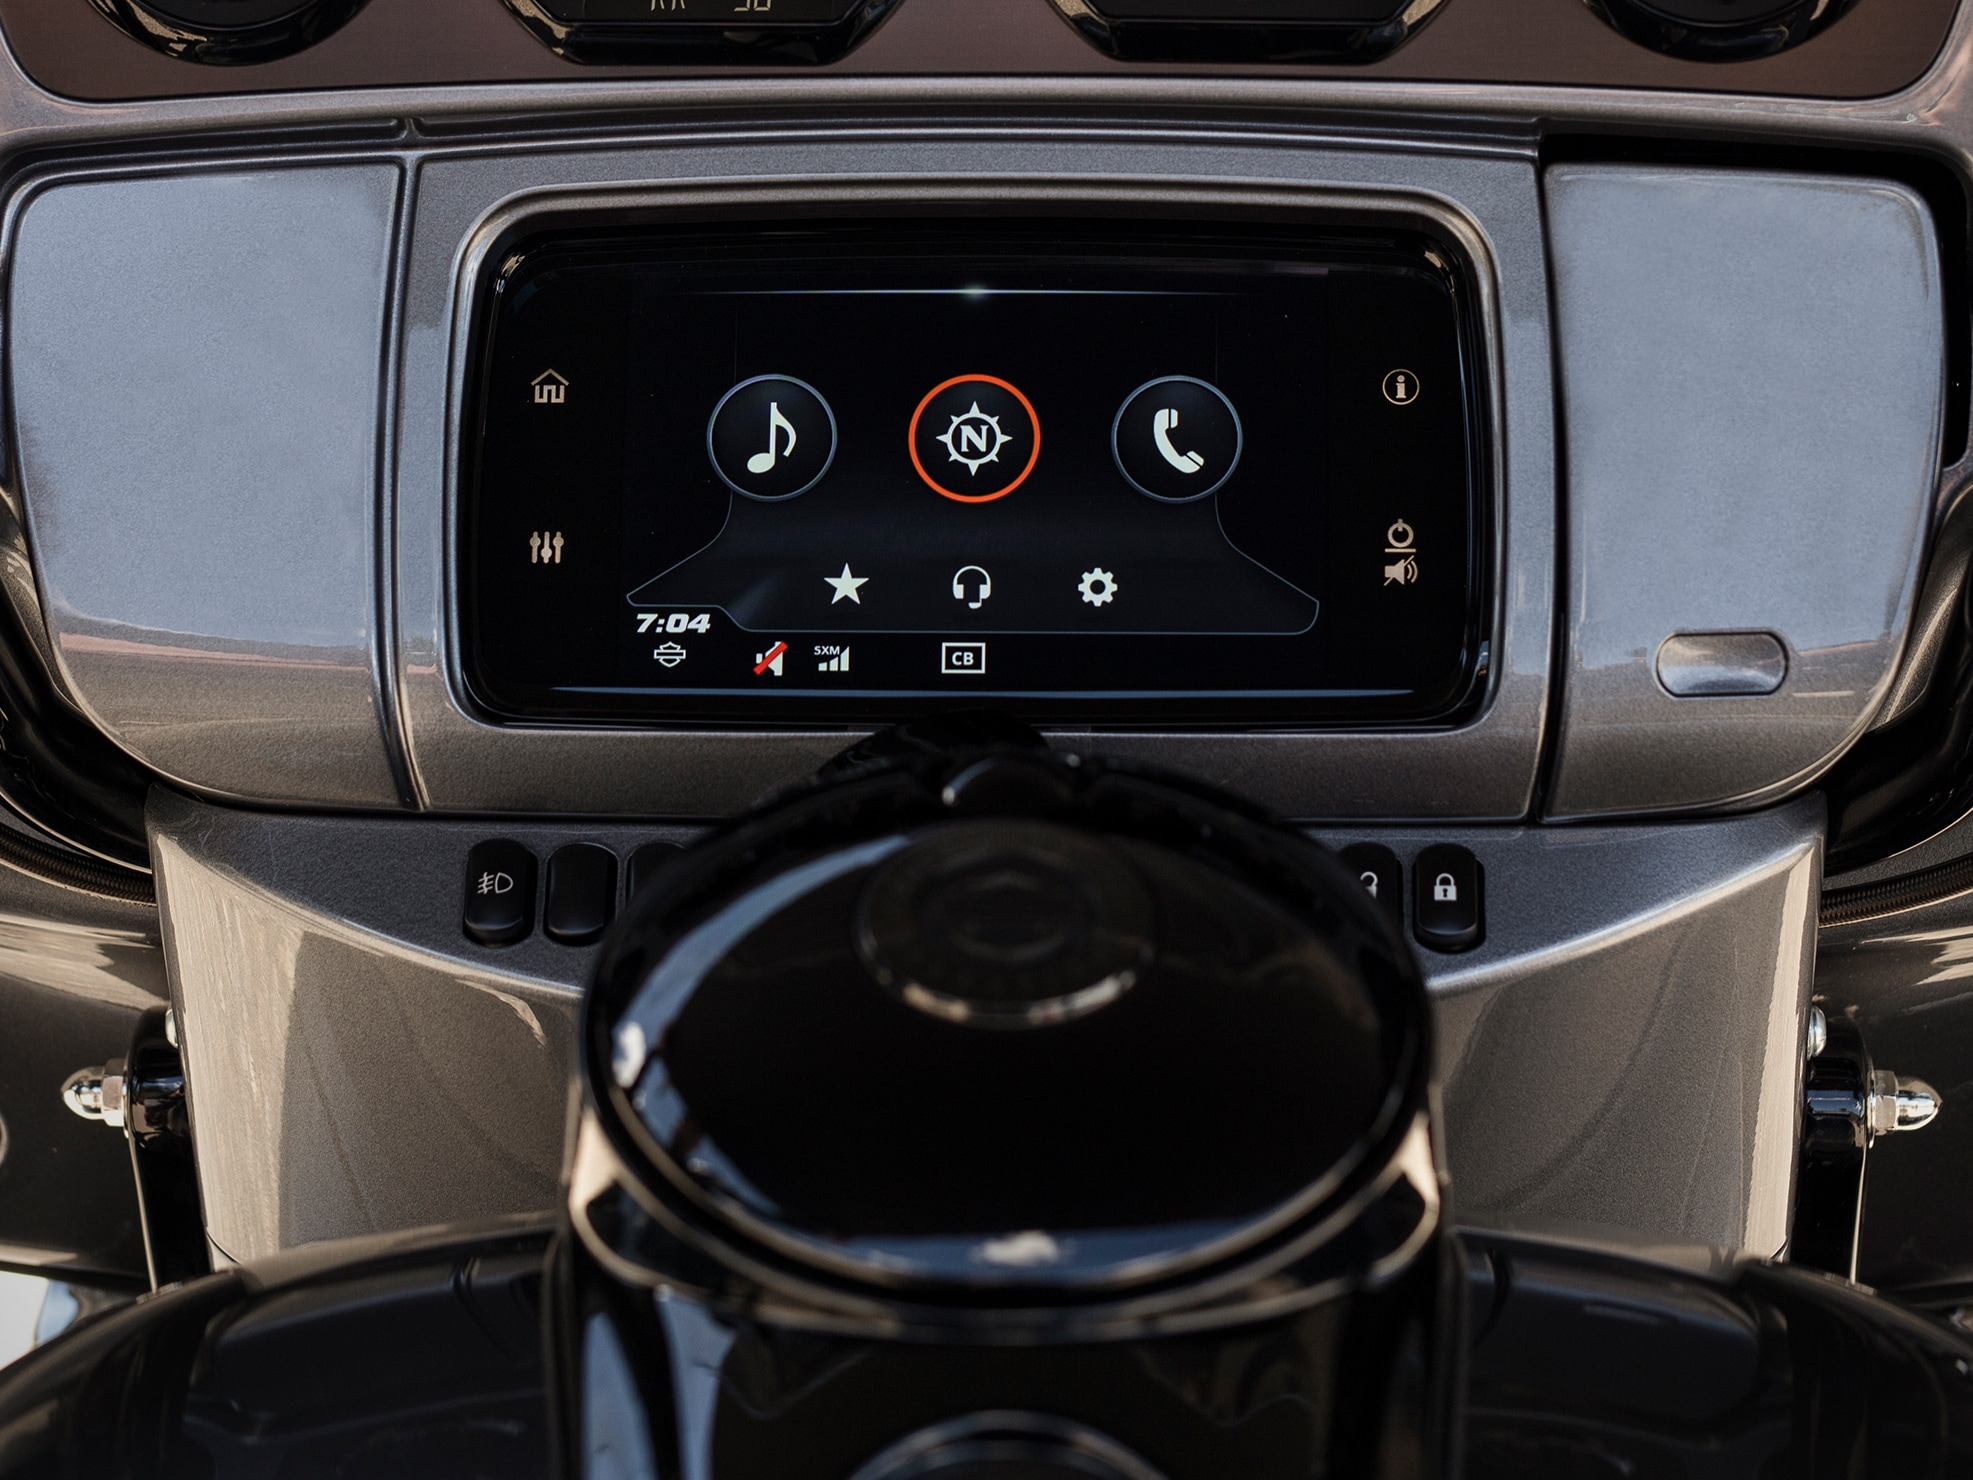 Infotainment System On a 2019 CVO H-D Motorcycle